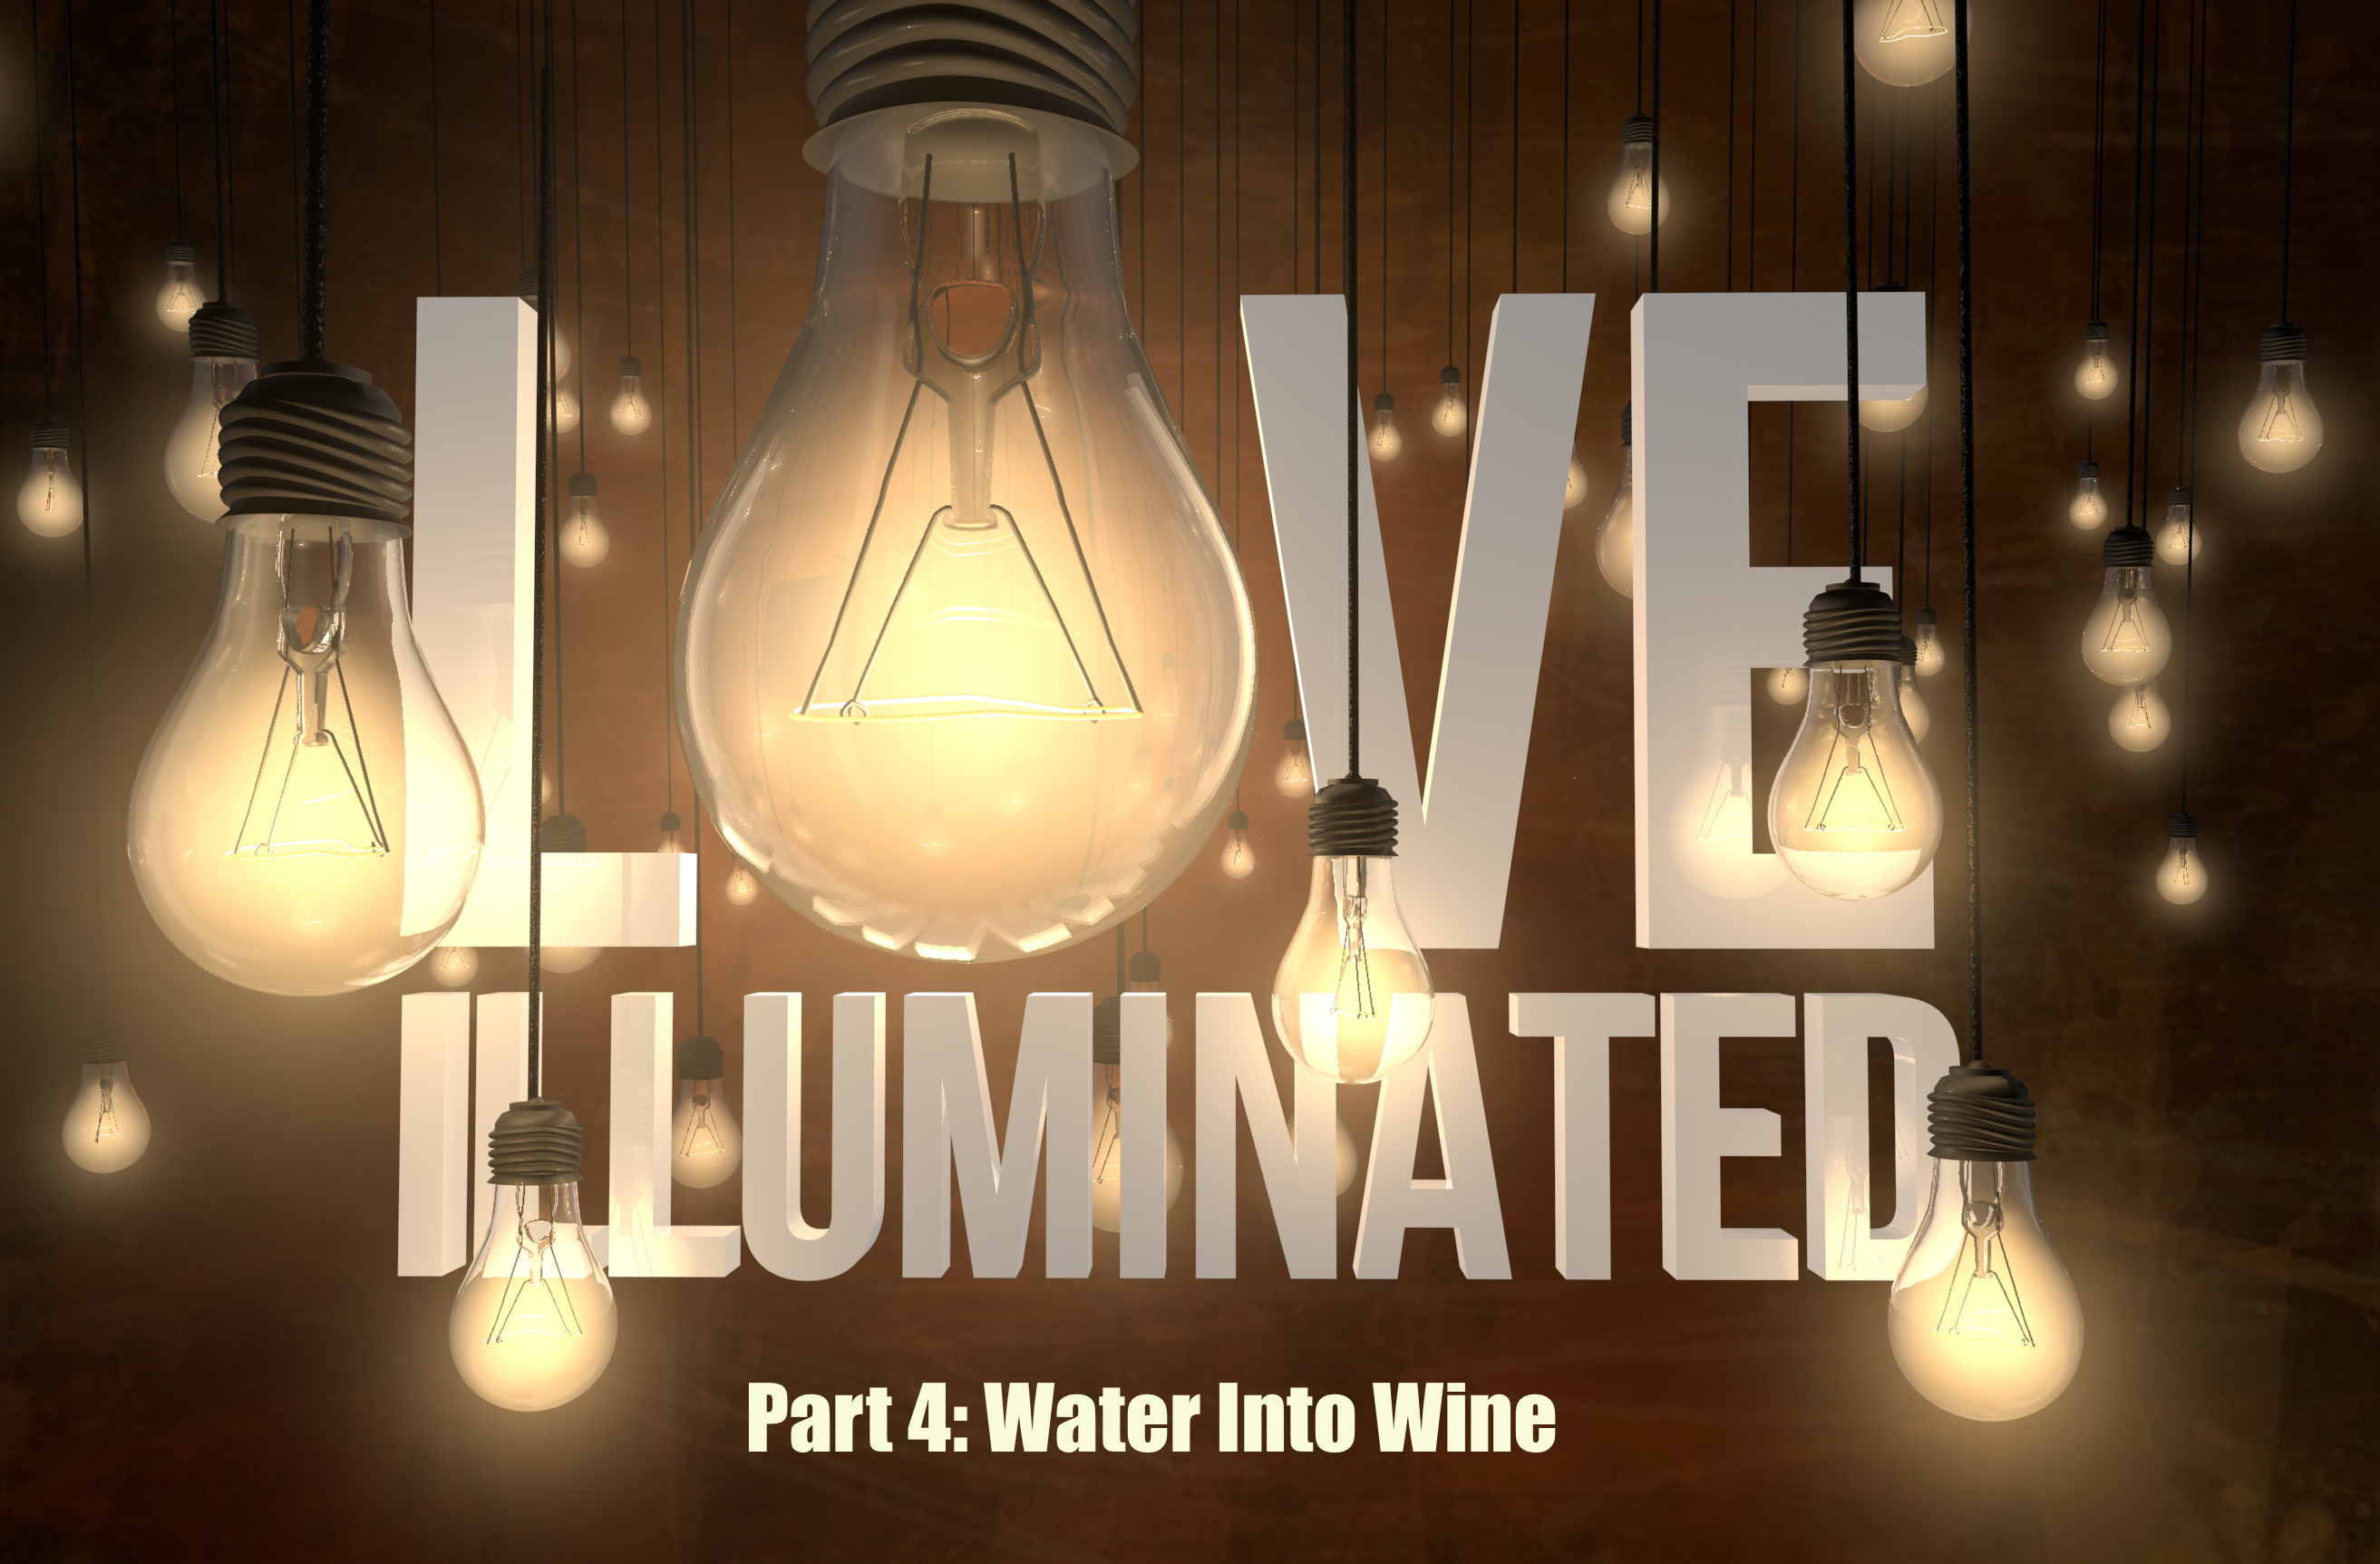 Love Illuminated, Part 4: Water Into Wine